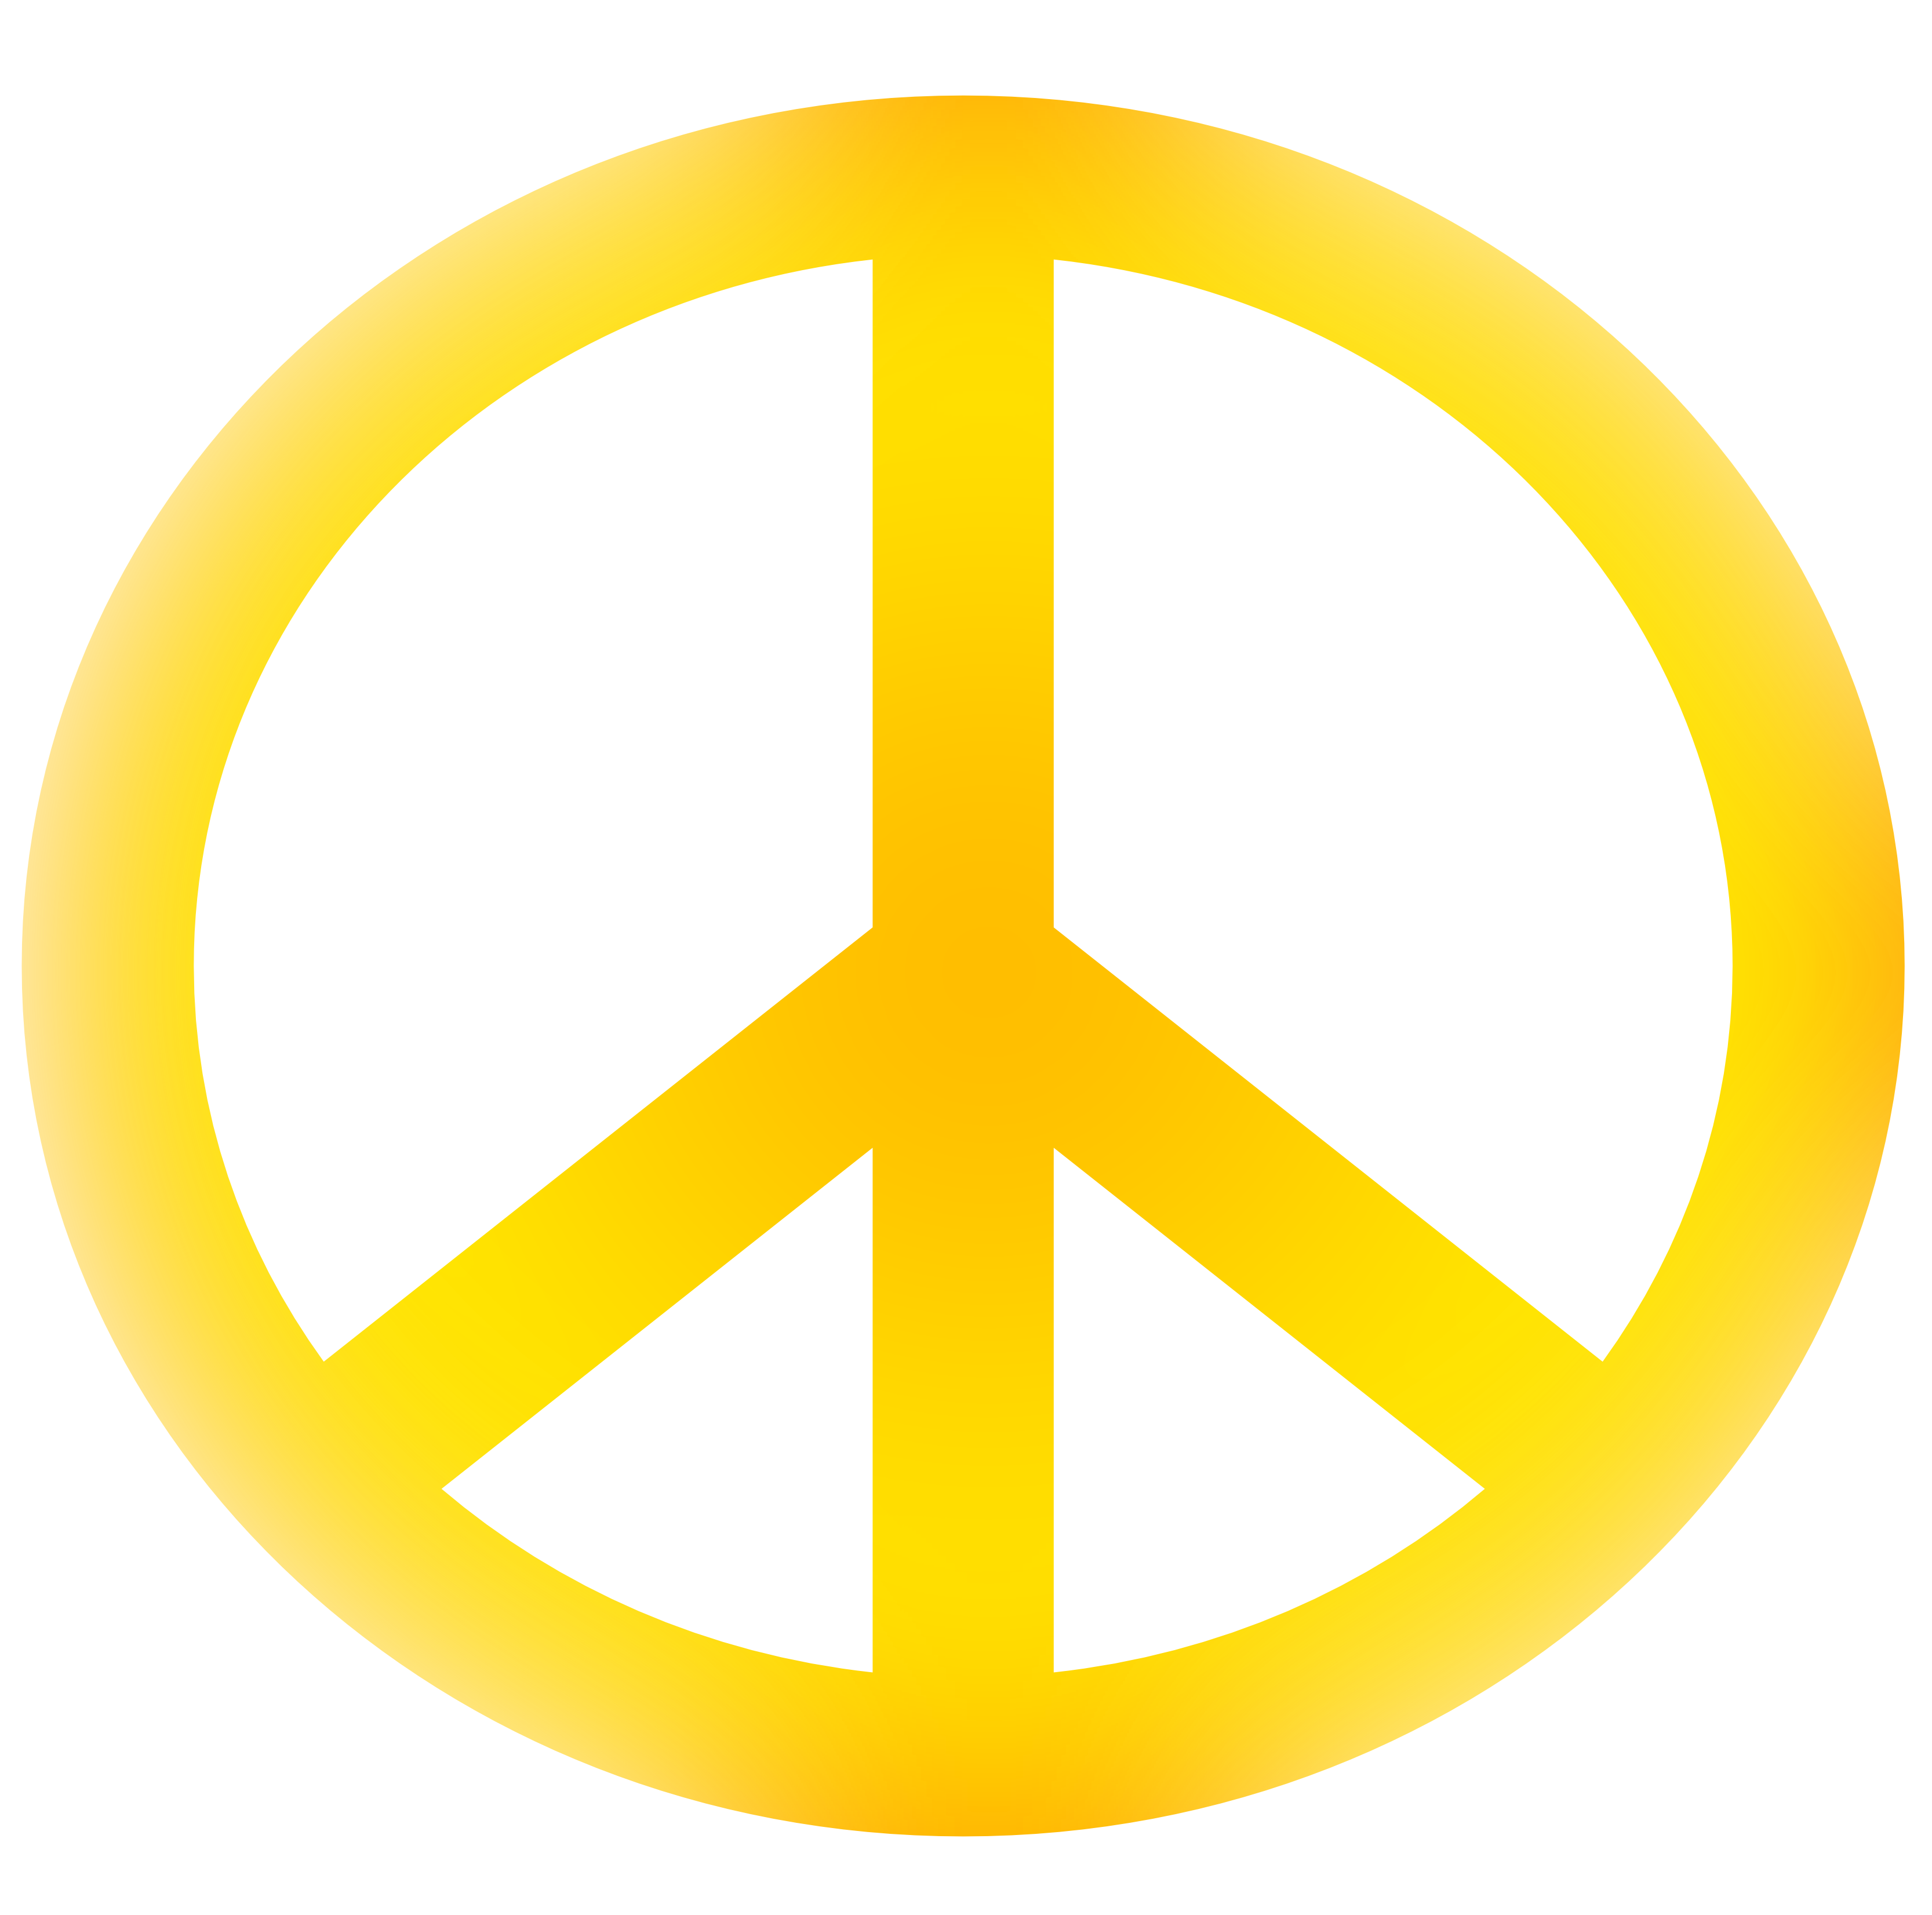 Peace sign png dab. Symbol transparent images all